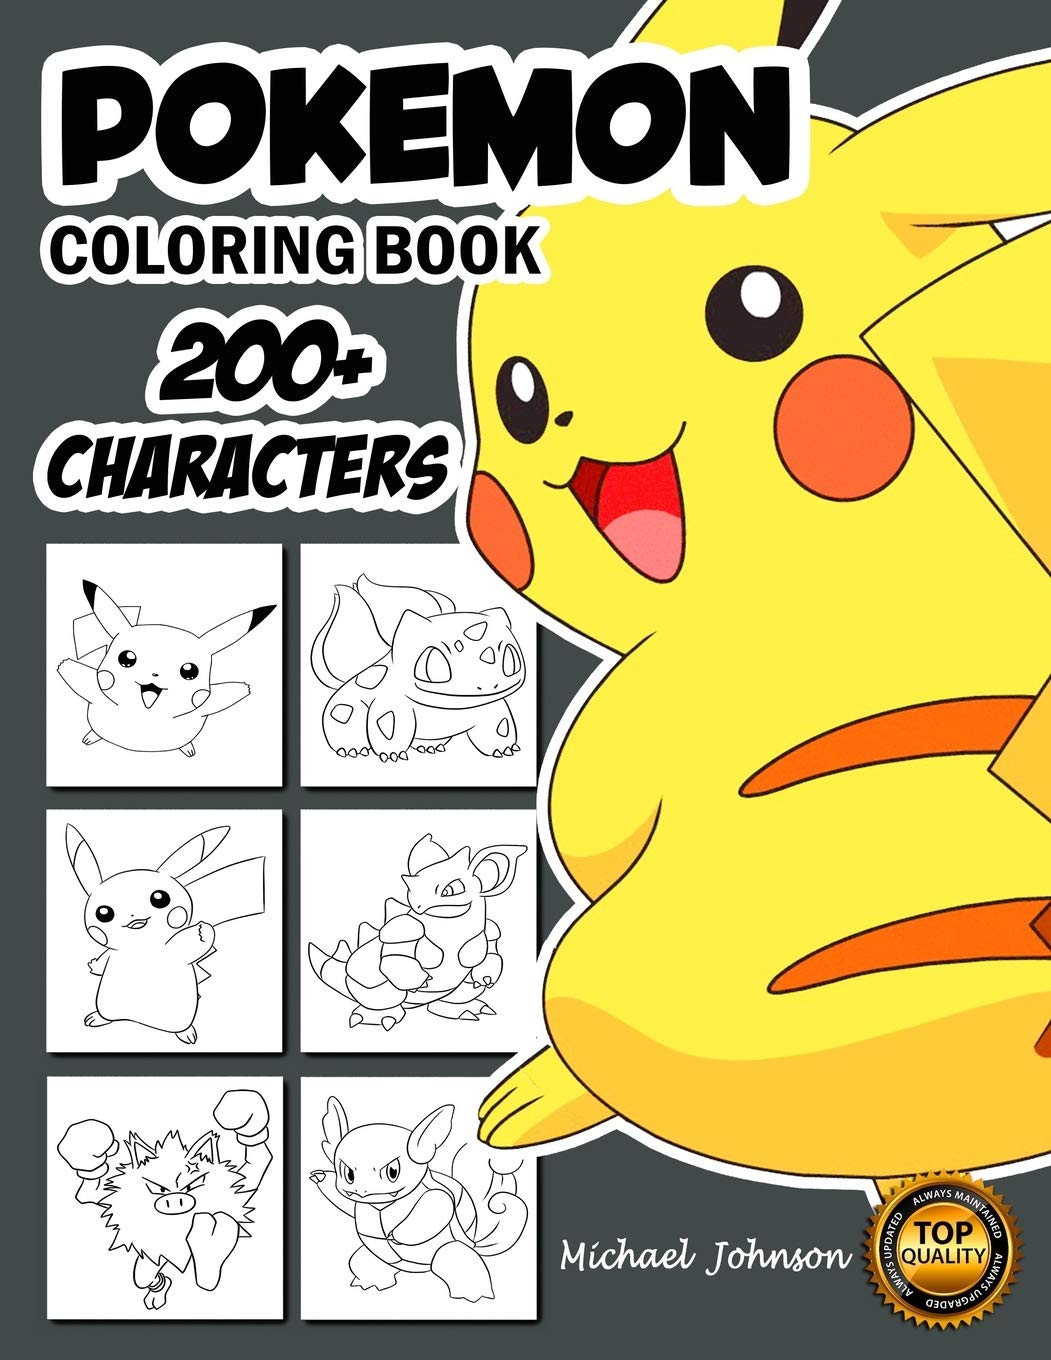 Amazon Com Pokemon Coloring Book 200 Pokemon Characters Pikachu Dragonite Charmander Eevee Squirtle Bulbasaur Coloring Pages Coloring Book For Kids Pokemon Coloring Pages Unofficial 9798649603089 Publication Michael Johnson Books